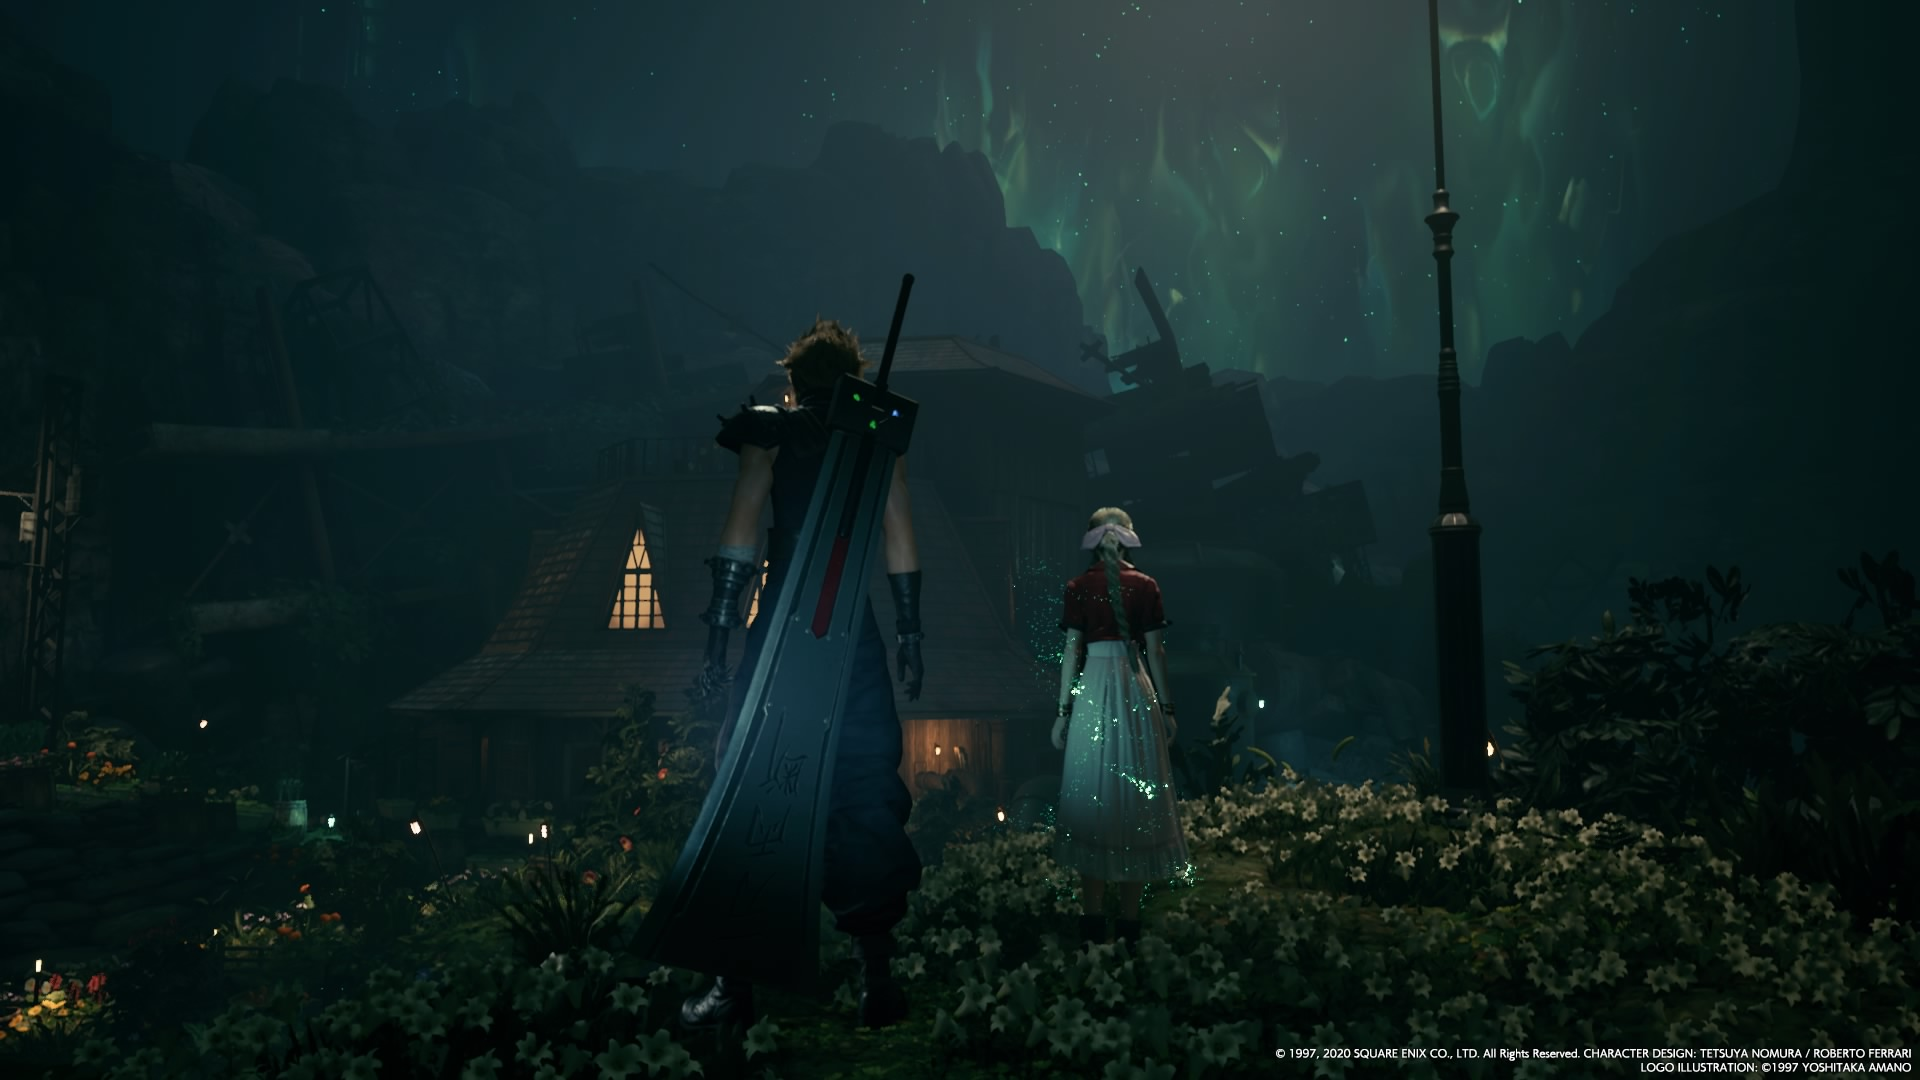 Cloud & Aerith in the garden at night.